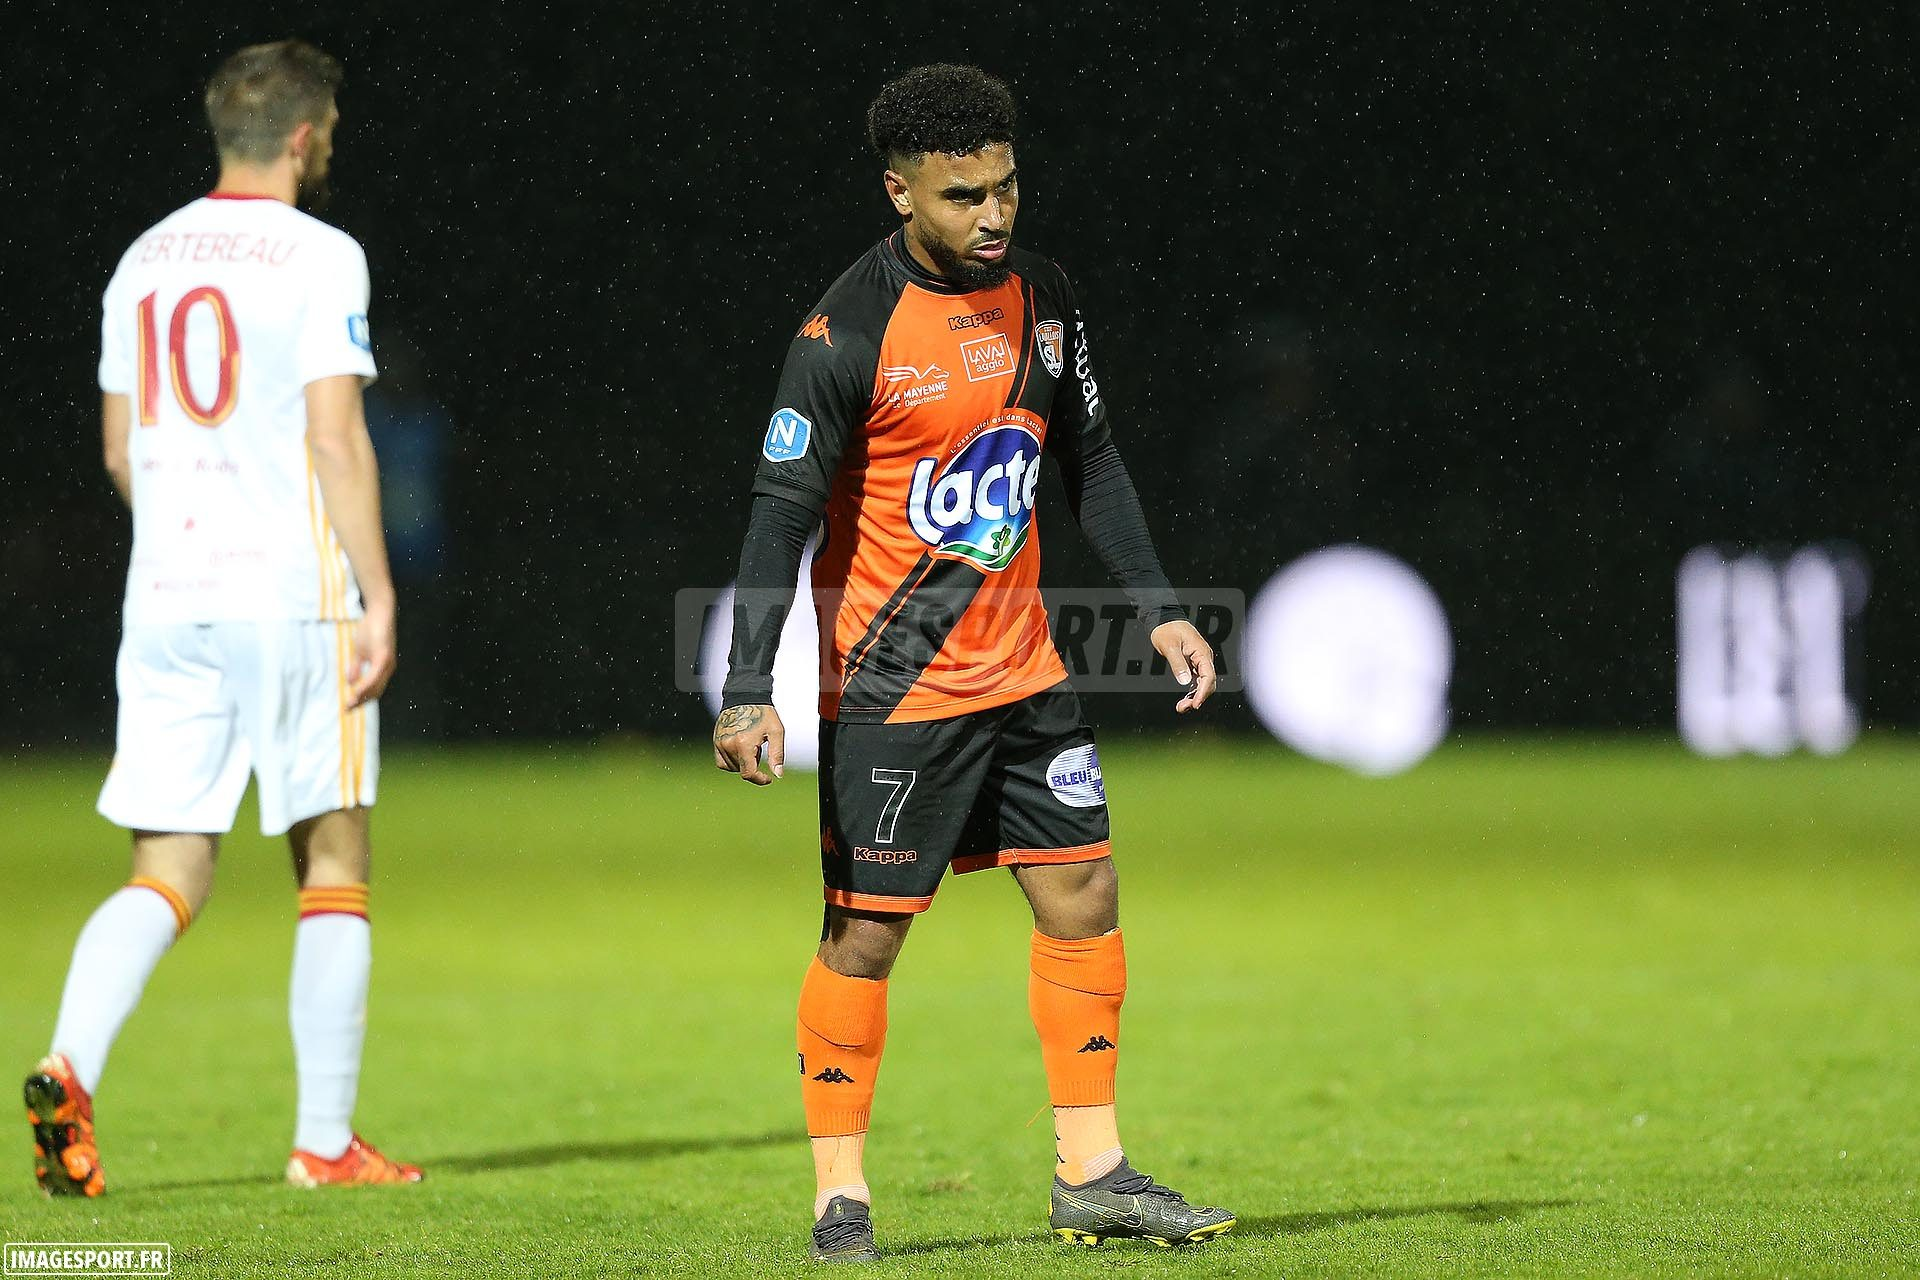 18-19-national-laval-rodez_26